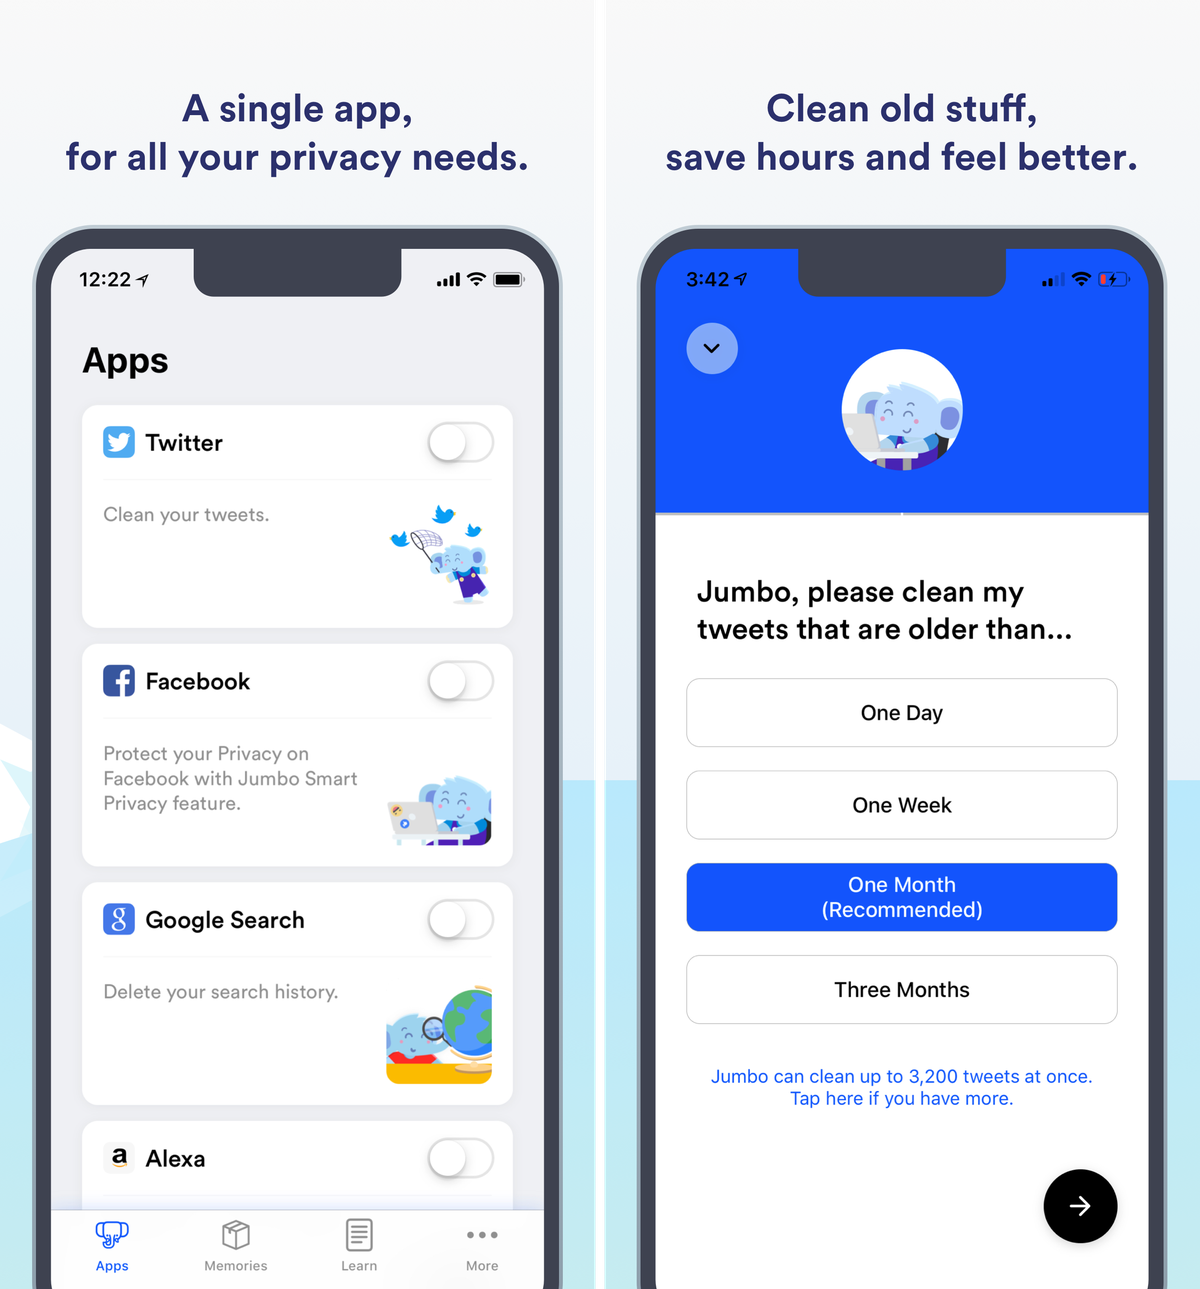 Jumbo is a powerful privacy assistant for iOS that cleans up